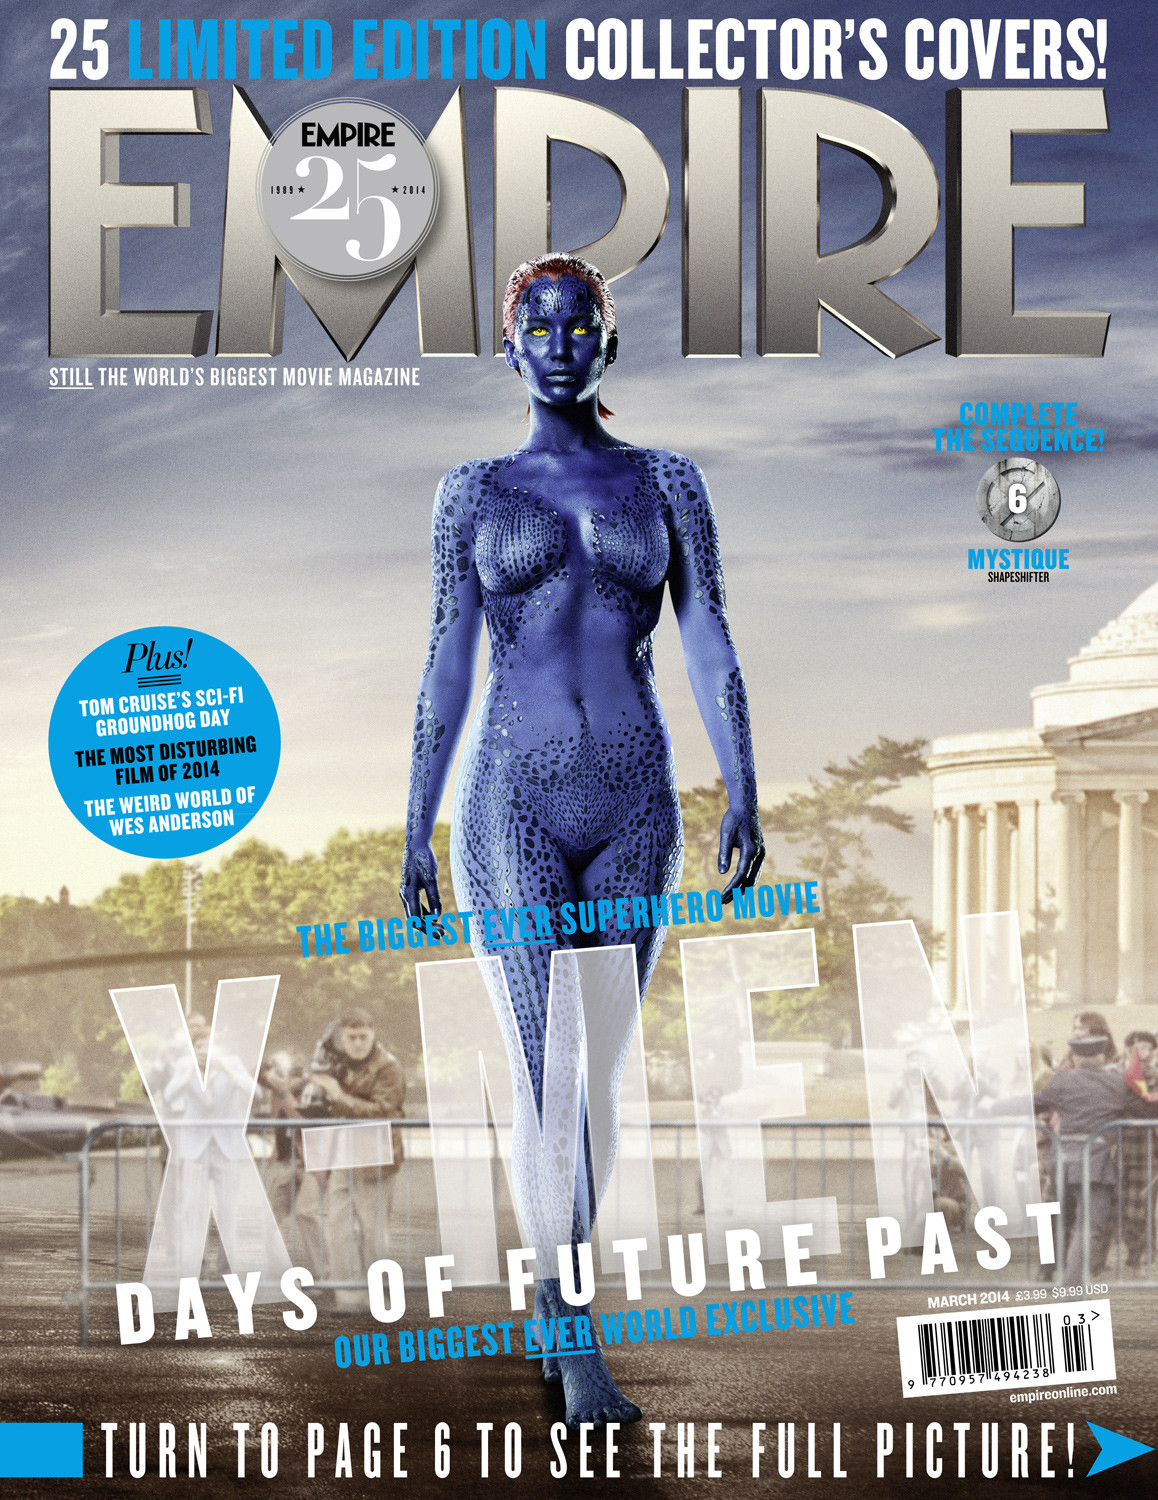 Empire - XDOFP Cover - 006 - Mystique